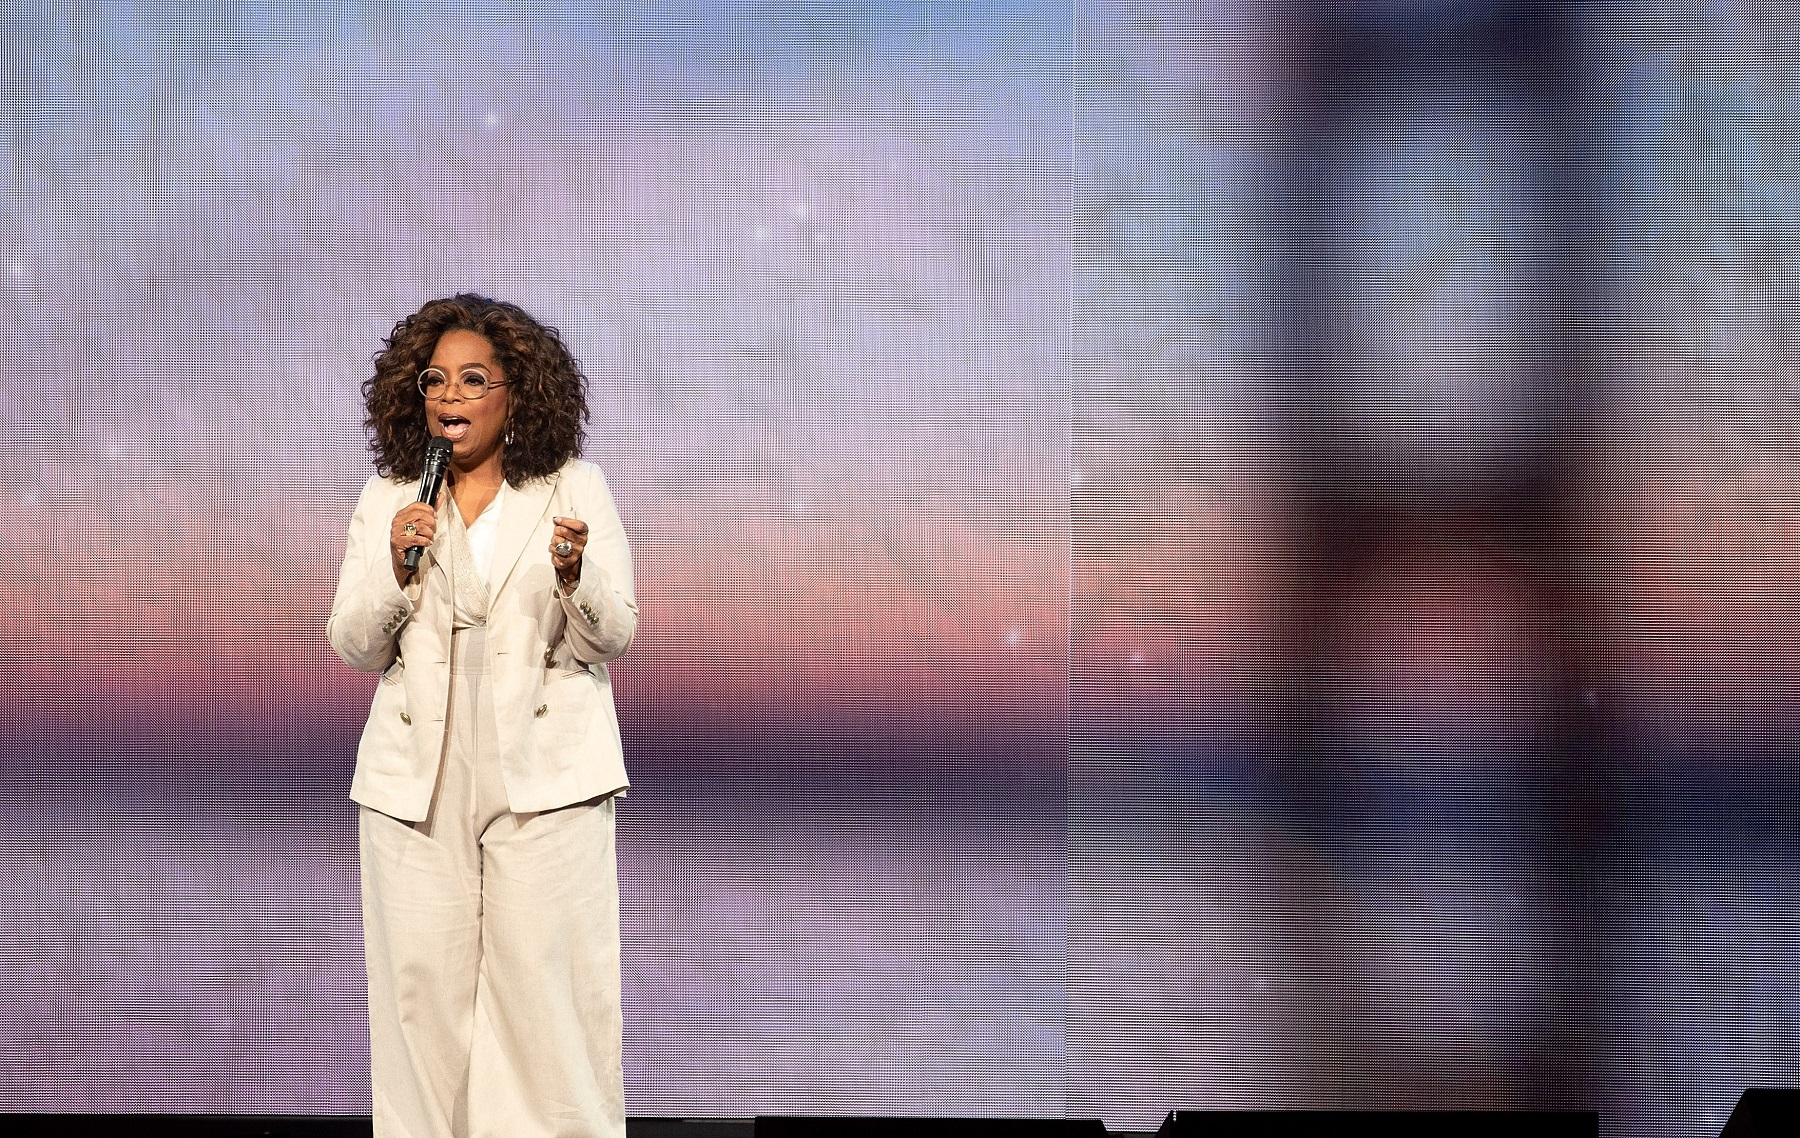 February 22, 2020, San Francisco, CA, USA: SAN FRANCISCO, CALIFORNIA - FEBRUARY 22: Oprah Winfrey speaks onstage during ''Oprah's 2020 Vision: Your Life in Focus'' tour at Chase Center on February 22, 2020 in San Francisco, California. Photo: imageSPACE,Image: 500326782, License: Rights-managed, Restrictions: , Model Release: no, Credit line: Imagespace / Zuma Press / Profimedia